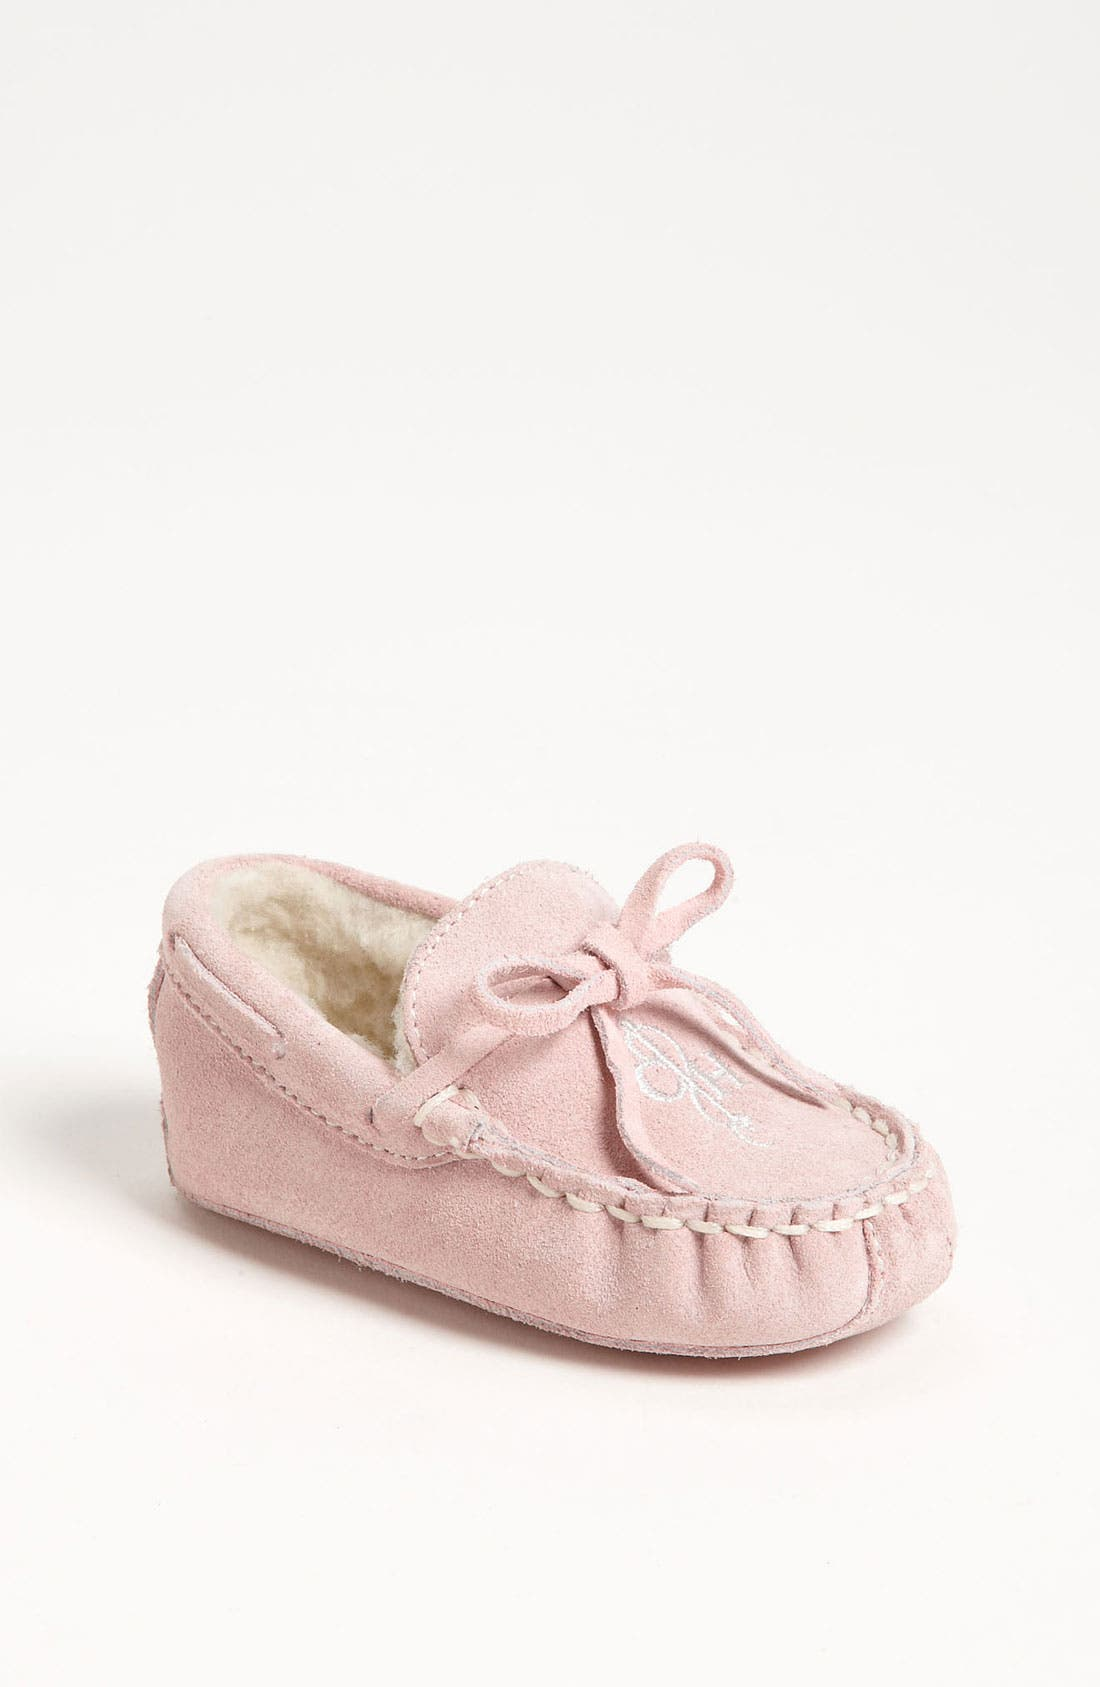 Main Image - Cole Haan 'Mini' Moccasin with Faux Shearling Lining (Baby)